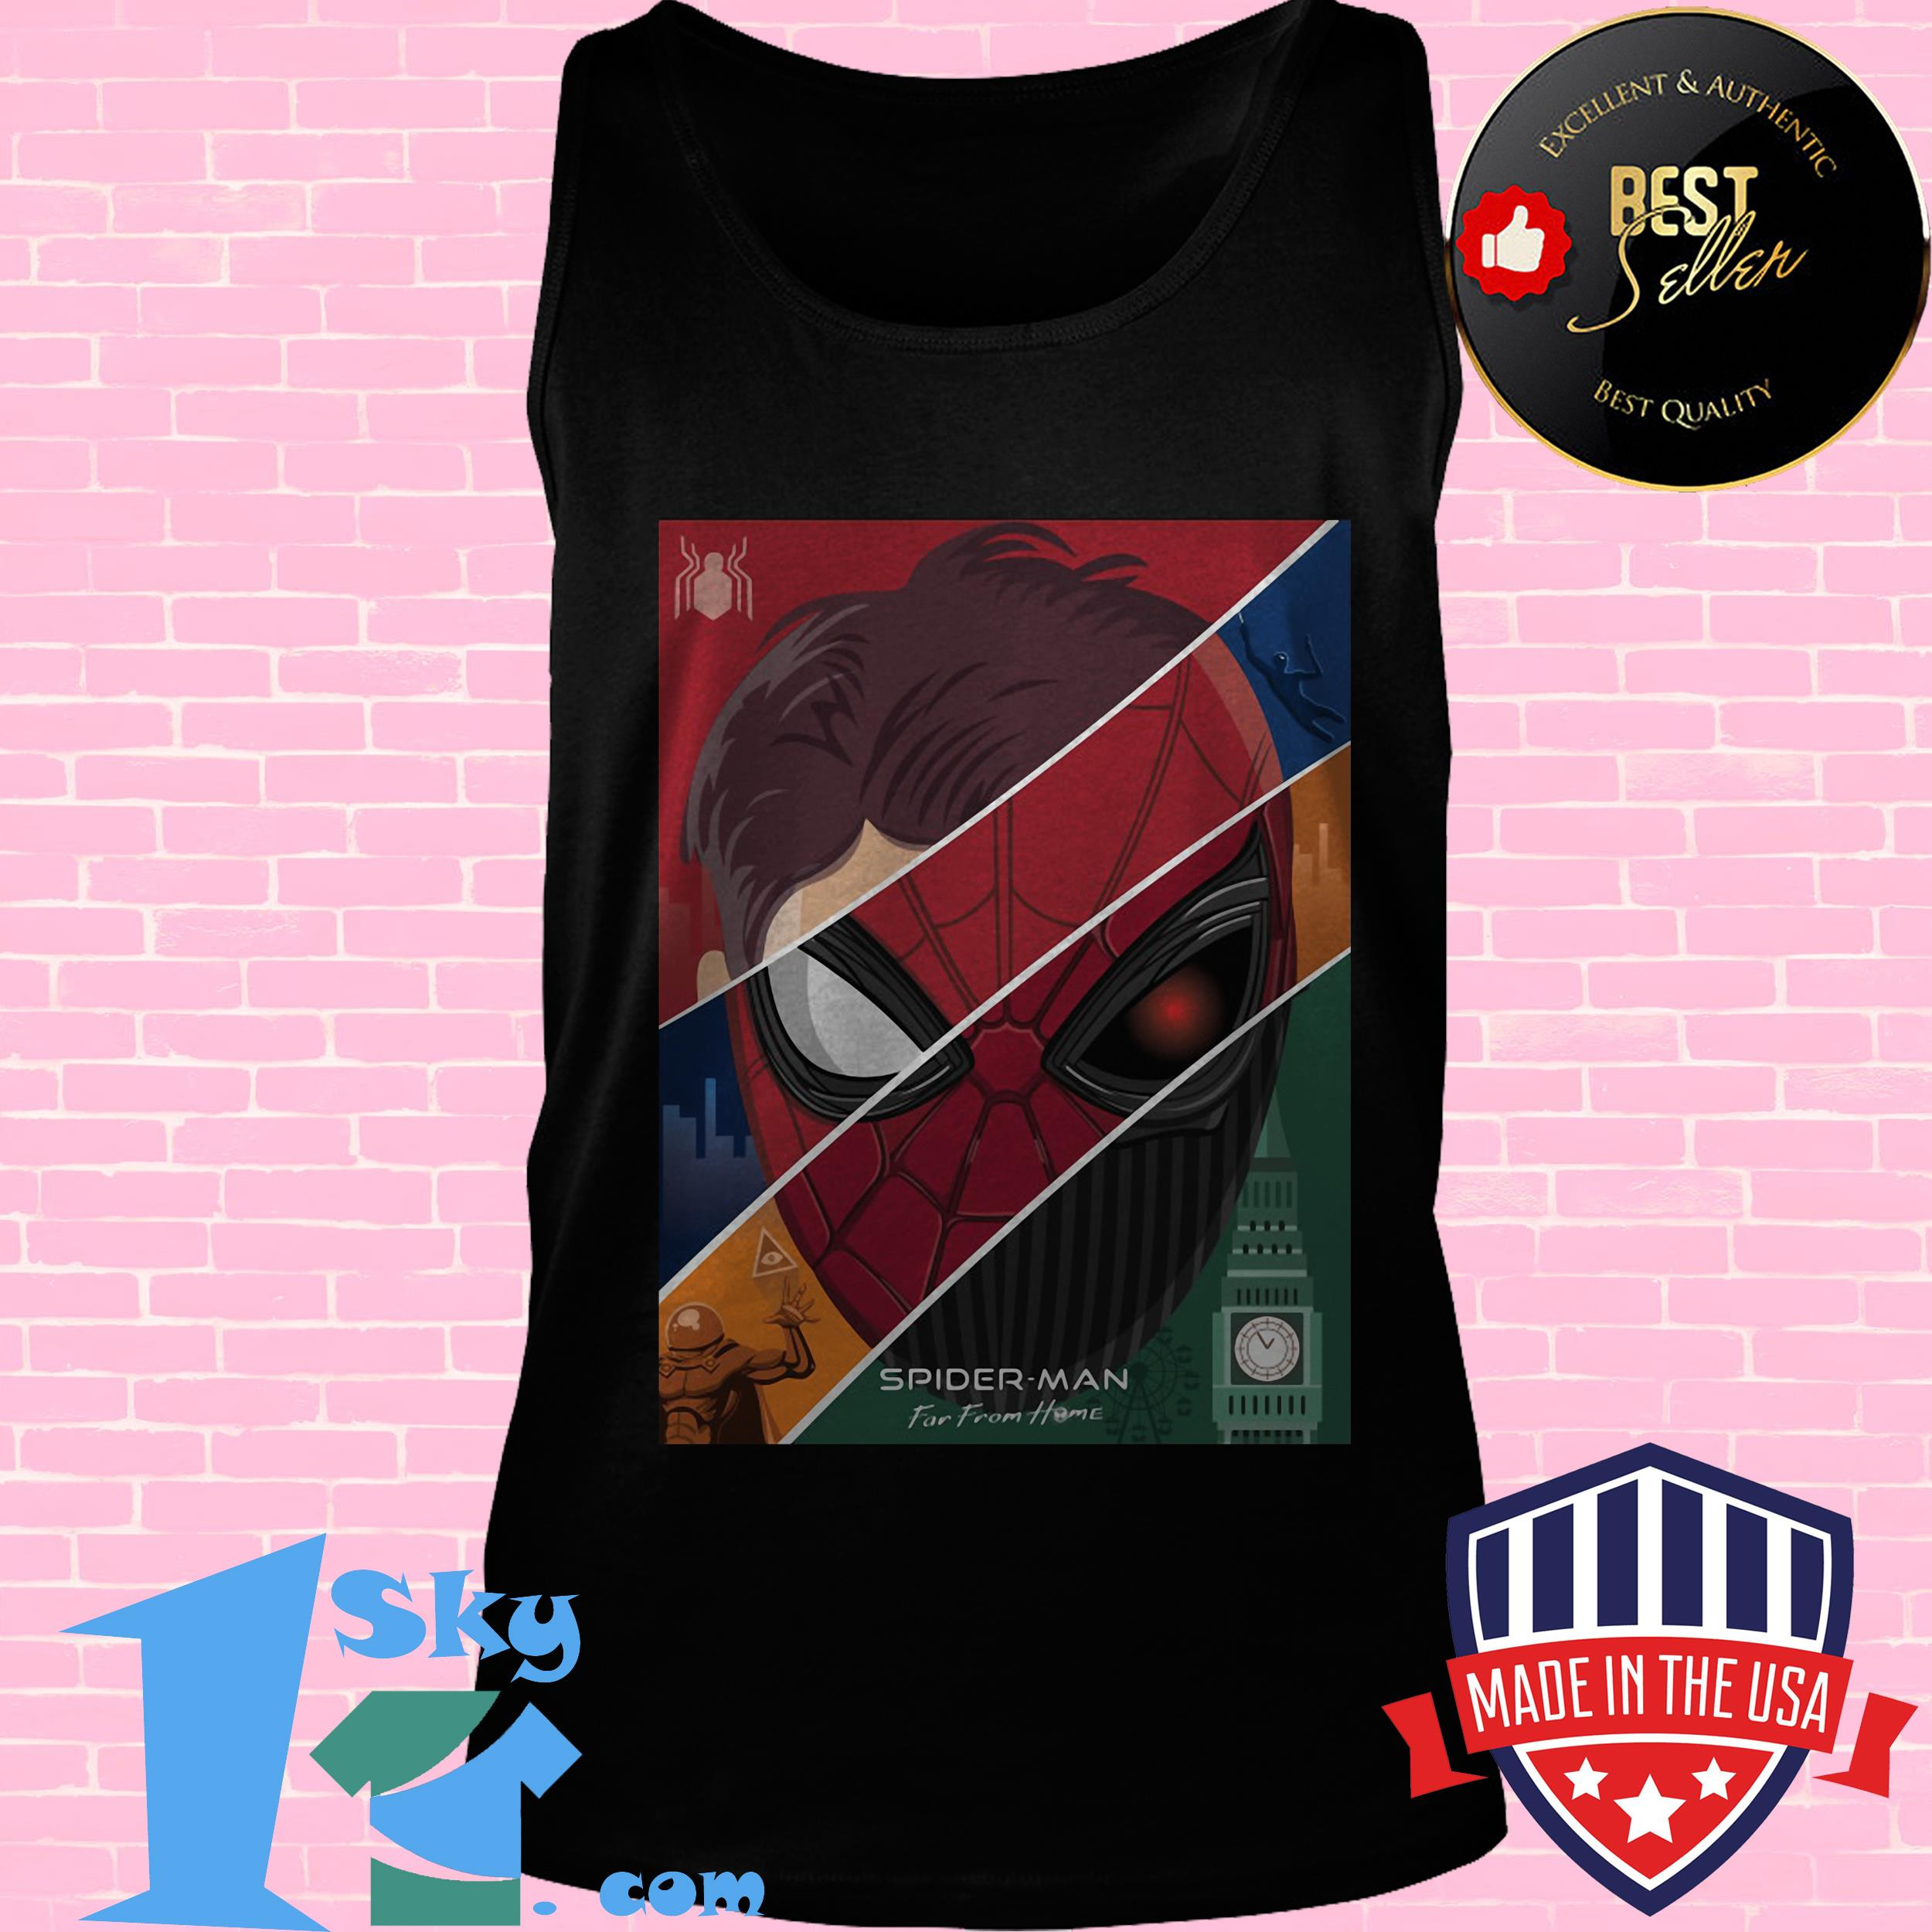 marvel spider man far from home tank top - Marvel Spider-Man Far From Home shirt